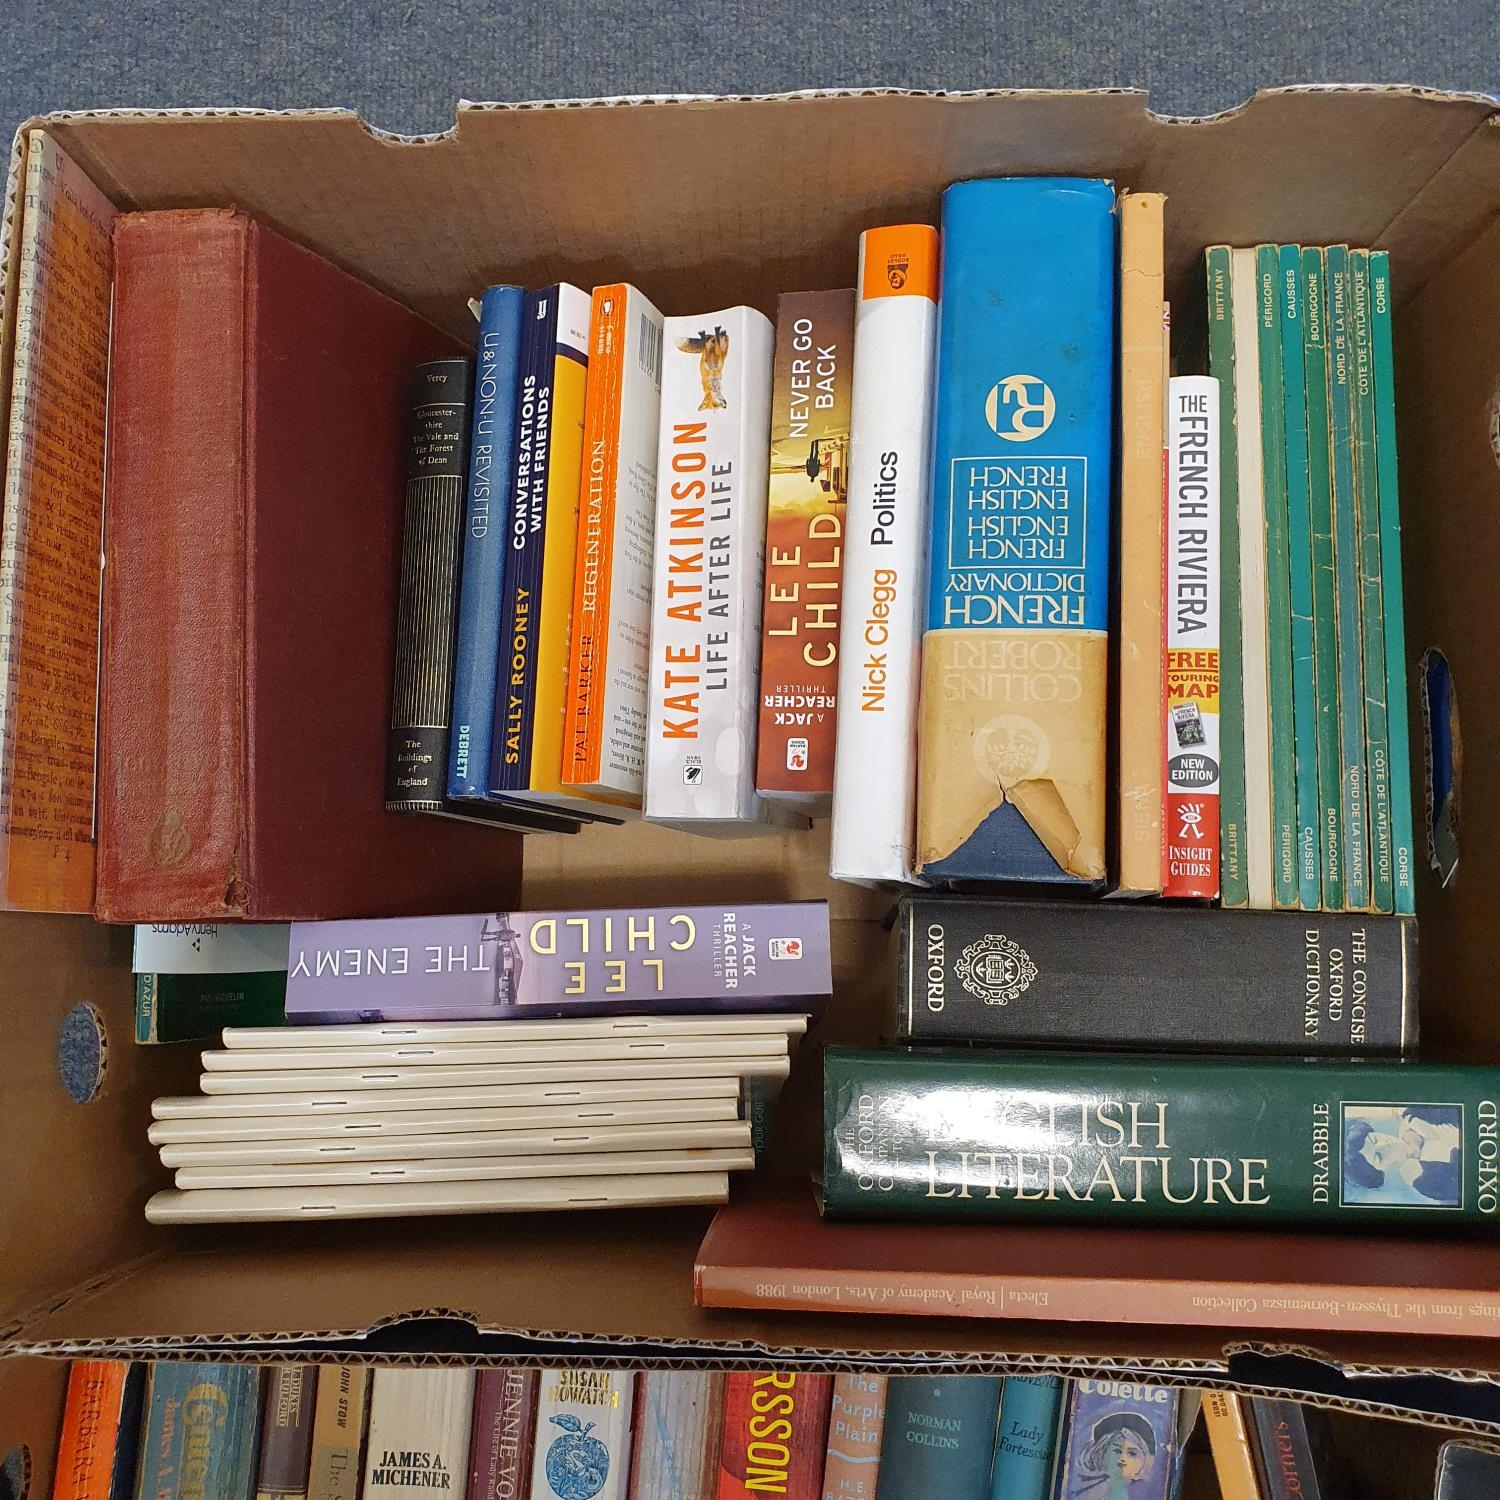 Hibbert (Christopher) London, and a large group of other books (19 boxes) - Image 9 of 21